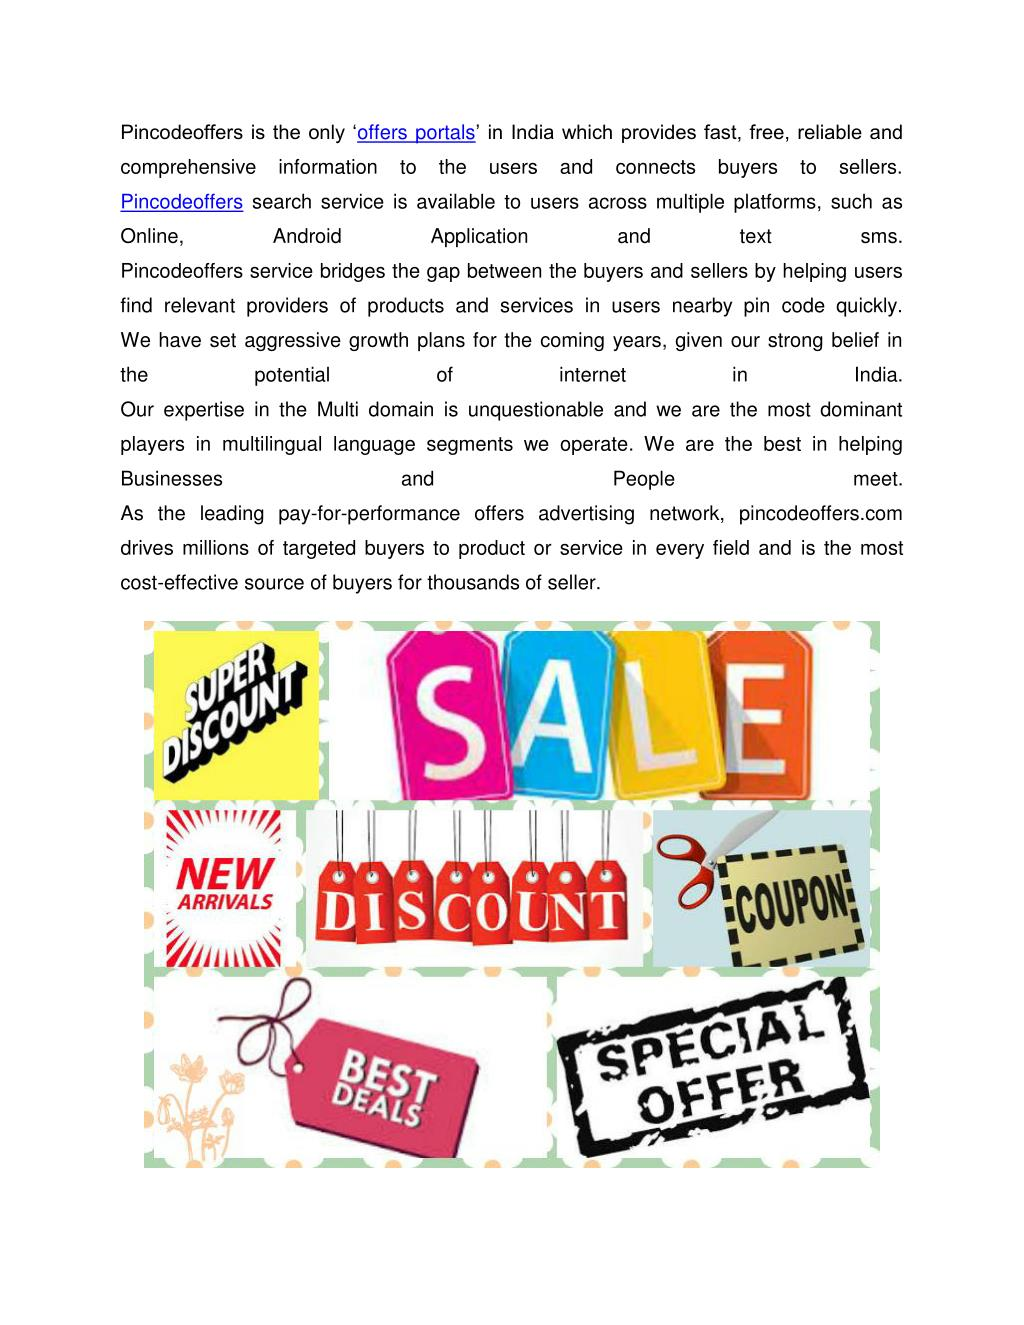 Ppt Online Shopping Offers Offline Coupons Shopping Discount Online Coupons Pincodeoffers Com Powerpoint Presentation Id 7205653